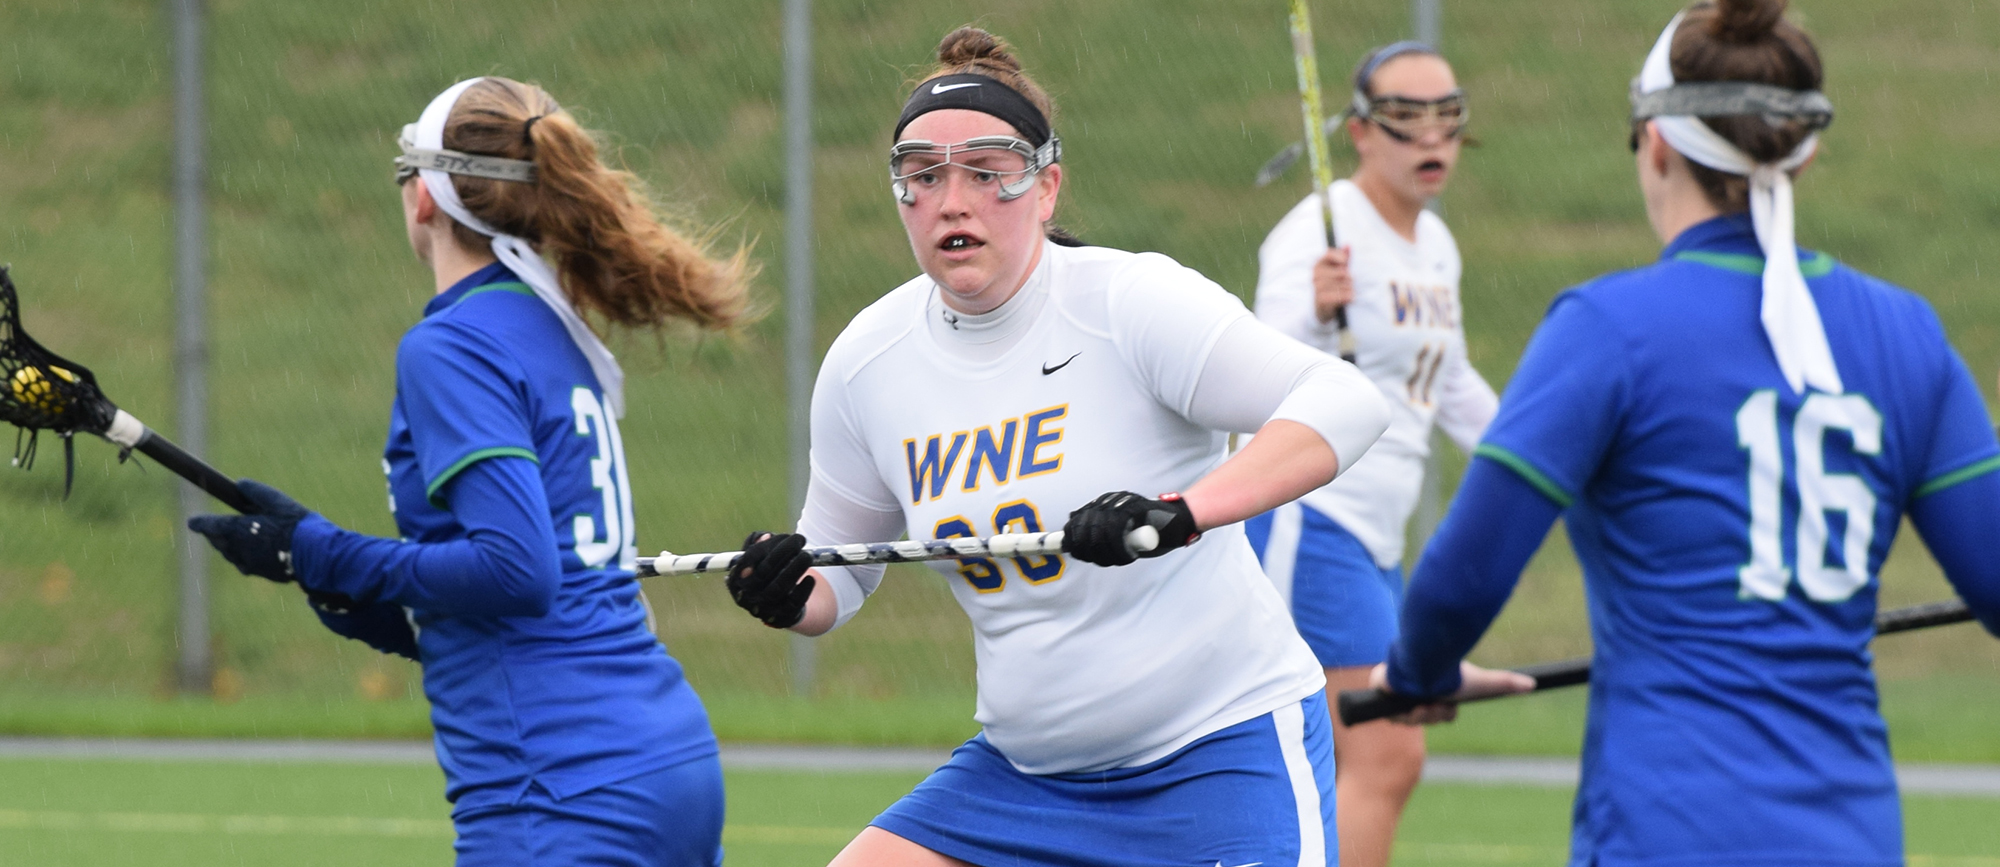 Sophomore Eileen Ruby helped fuel Western New England's late comeback as the Golden Bears earned a 12-11 win at Salve Regina on Saturday. (Photo by Rachael Margossian)